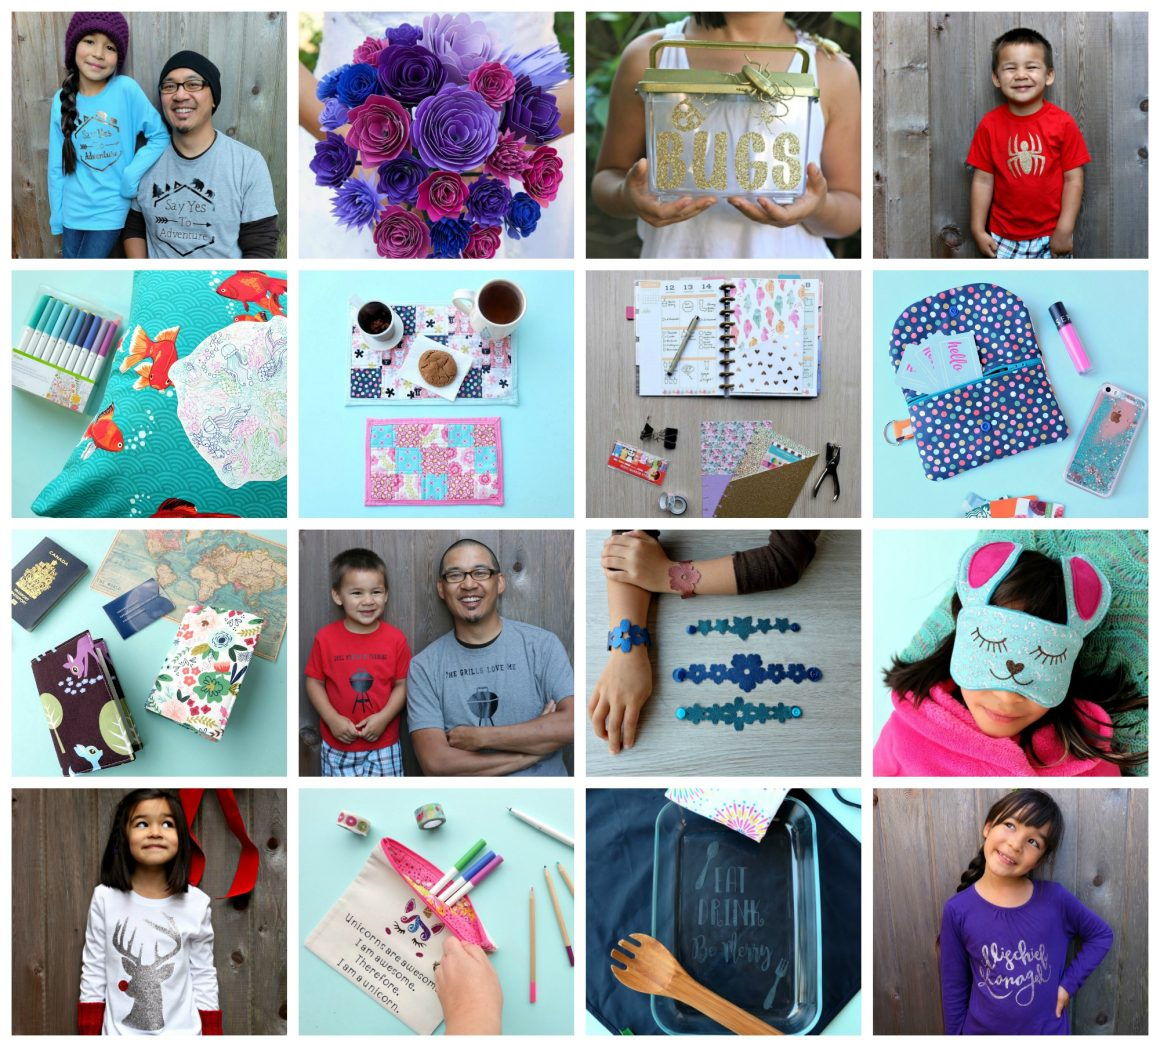 A ton of great project ideas for the Cricut Maker and the Cricut Explore from Hello Creative Family. Most of these projects take 1 hour or less to make! #CricutMaker #CricutMade #cricutprojects #craft